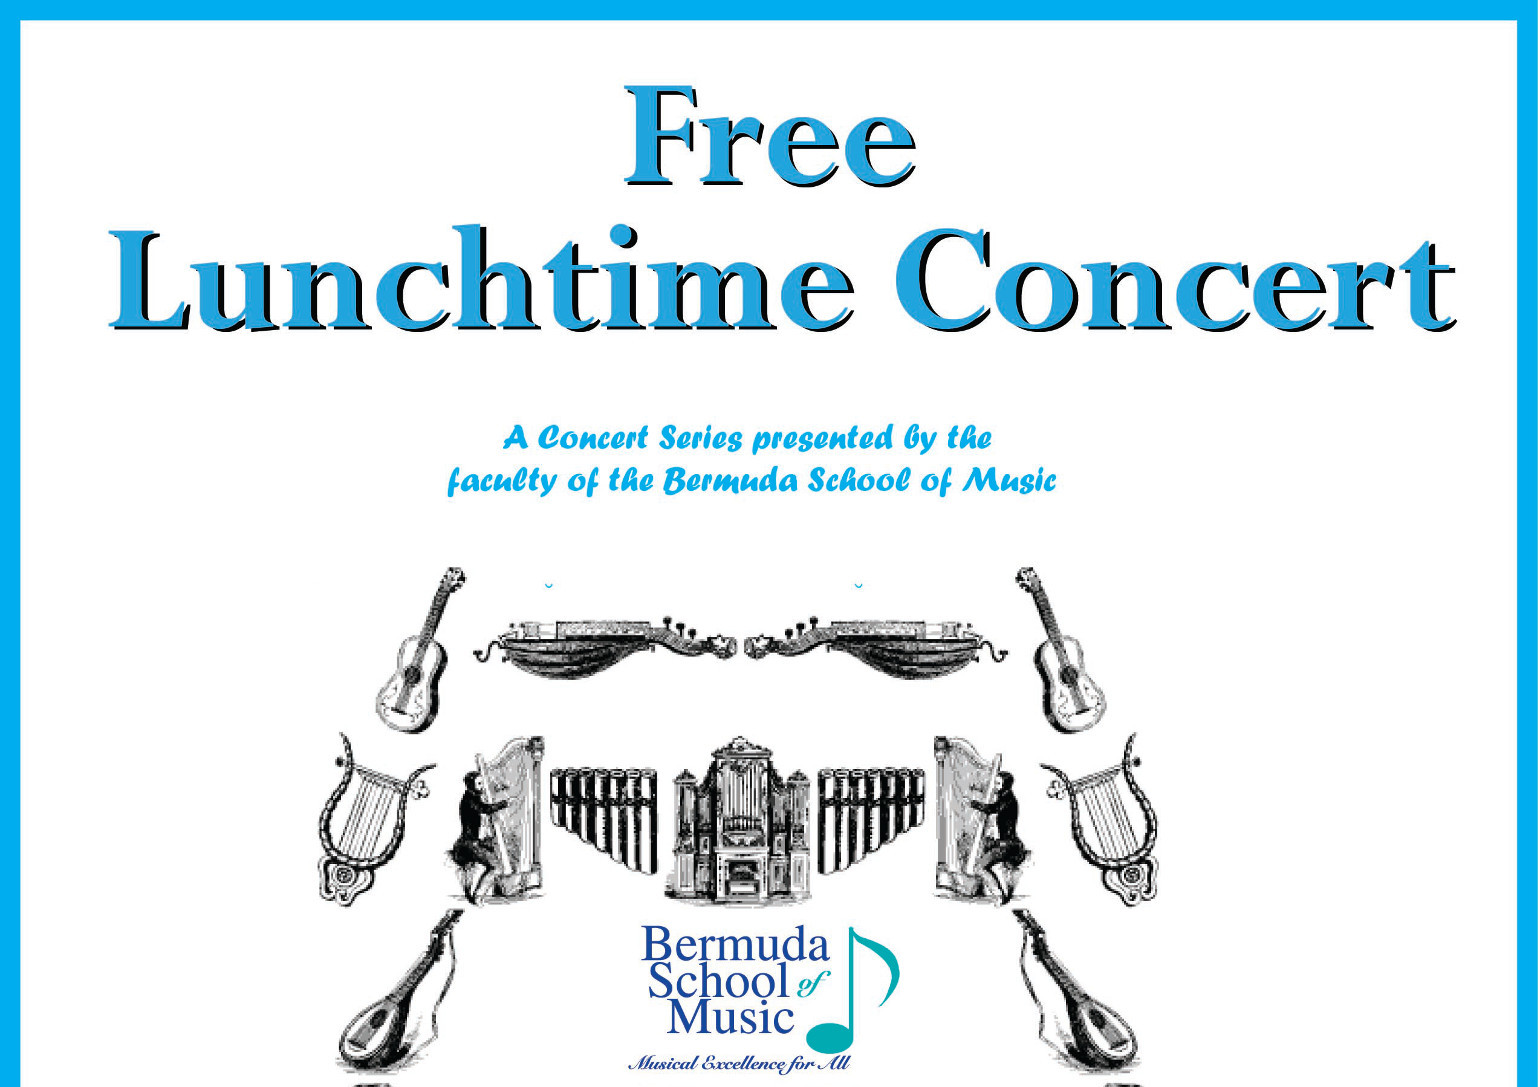 FREE Lunchtime Concert on Friday, March 10th